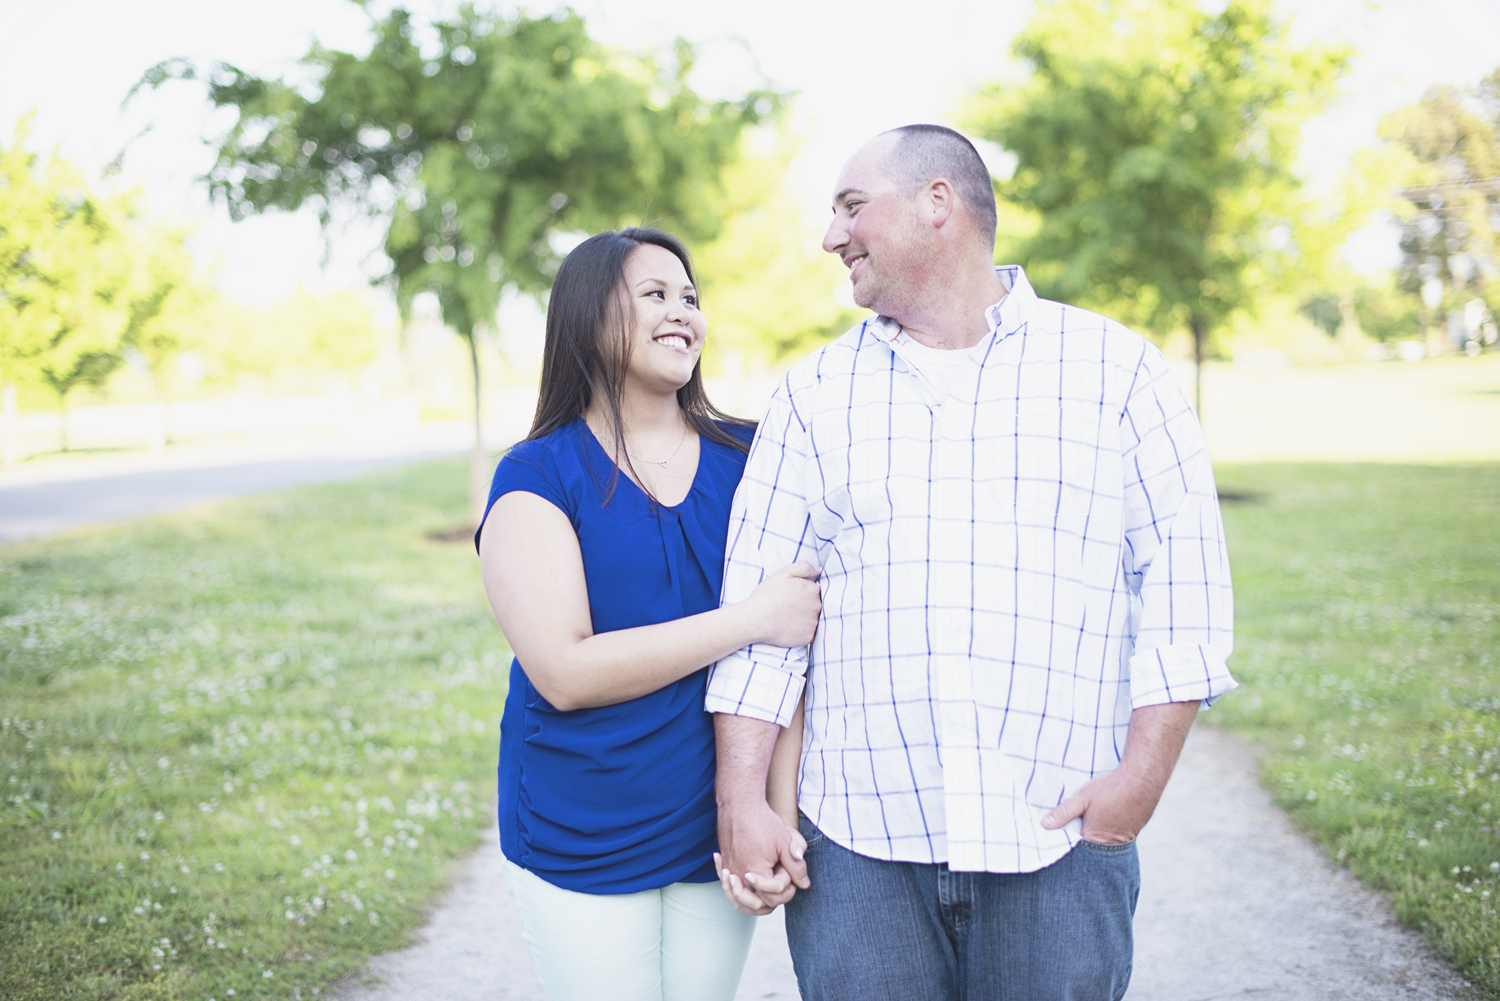 Windsor Castle Park Engagement Session in Smithfield, Virginia | Teal and blue outfits